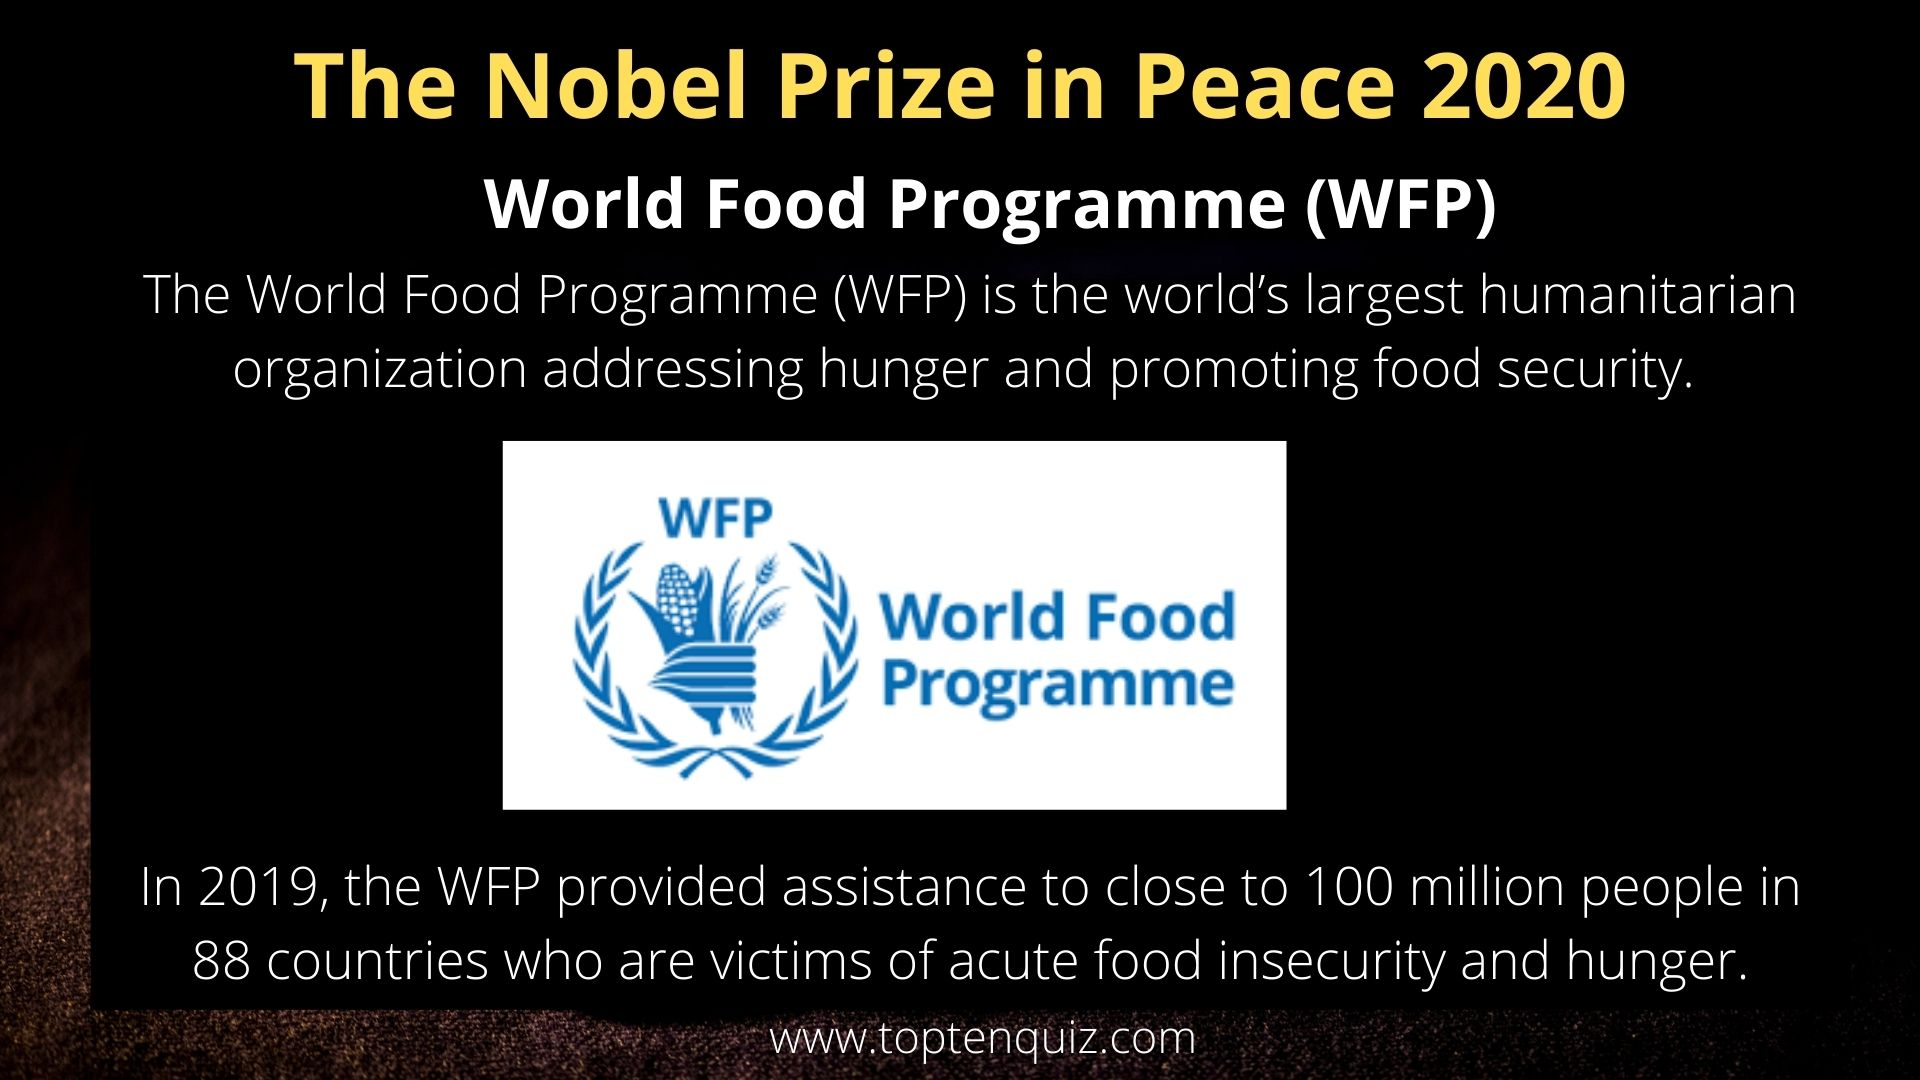 The Nobel Prize in Peace 2020 -  World Food Programme (WFP)